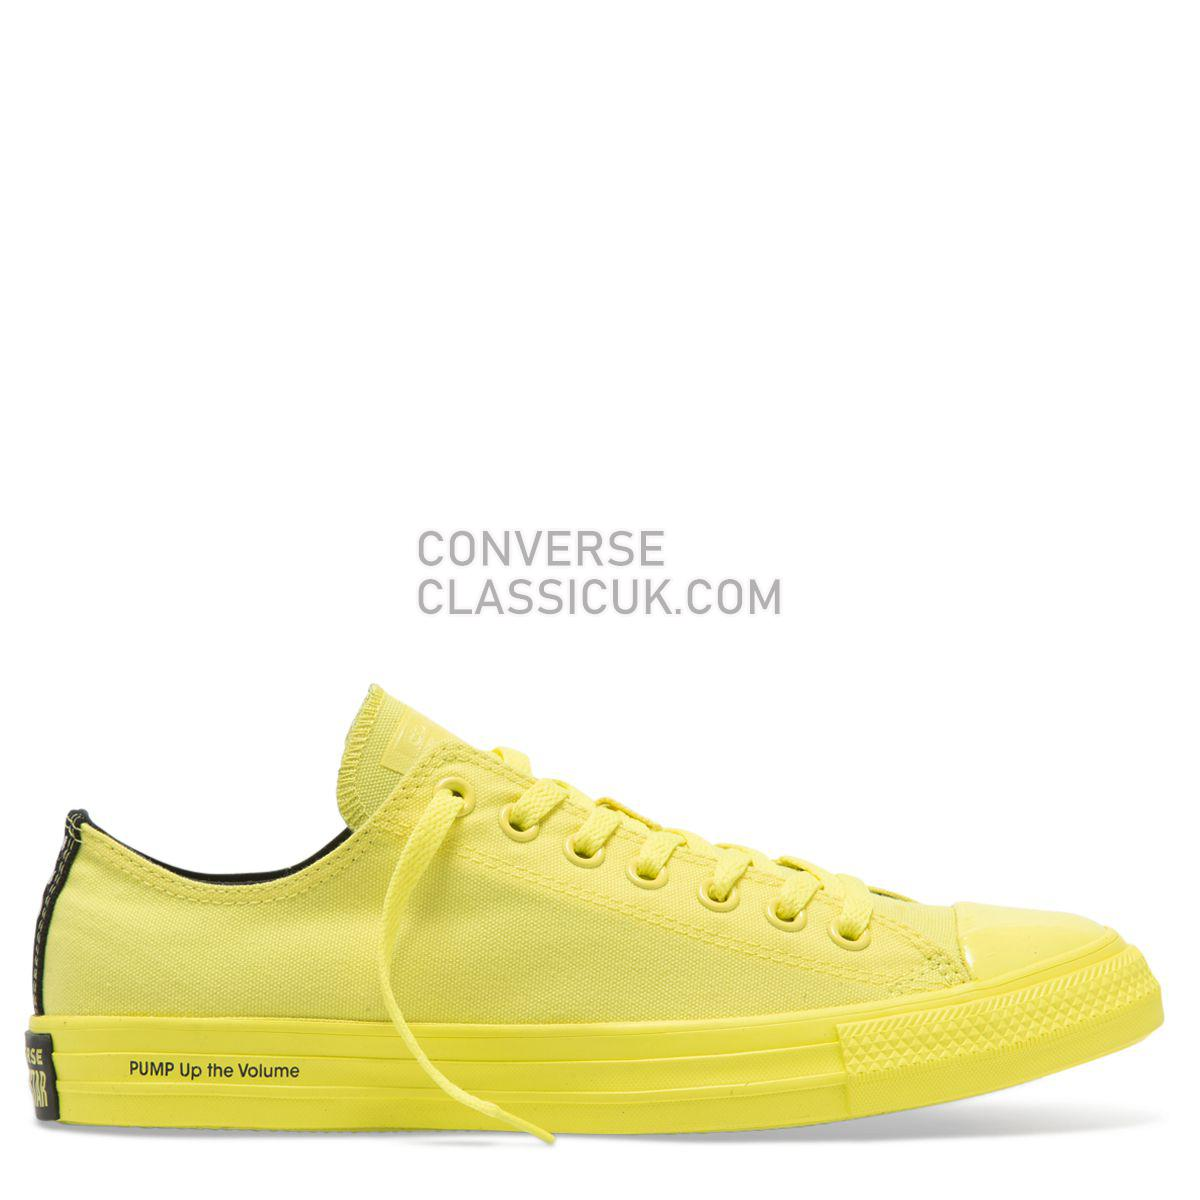 Converse X OPI Chuck Taylor All Star Low Top Zinc Yellow Womens 165660 Zinc Yellow/Zinc Yellow Shoes